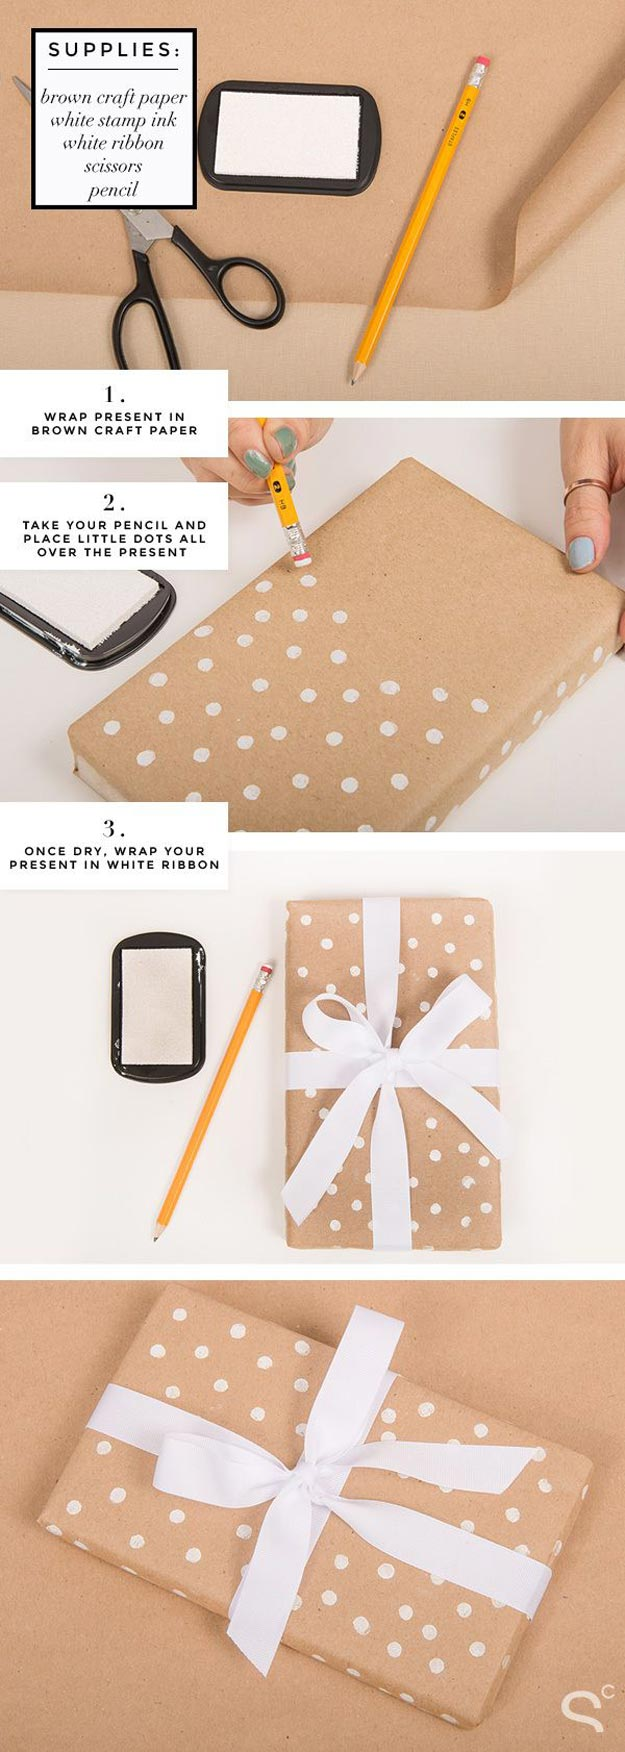 Christmas wrapping ideas 2020